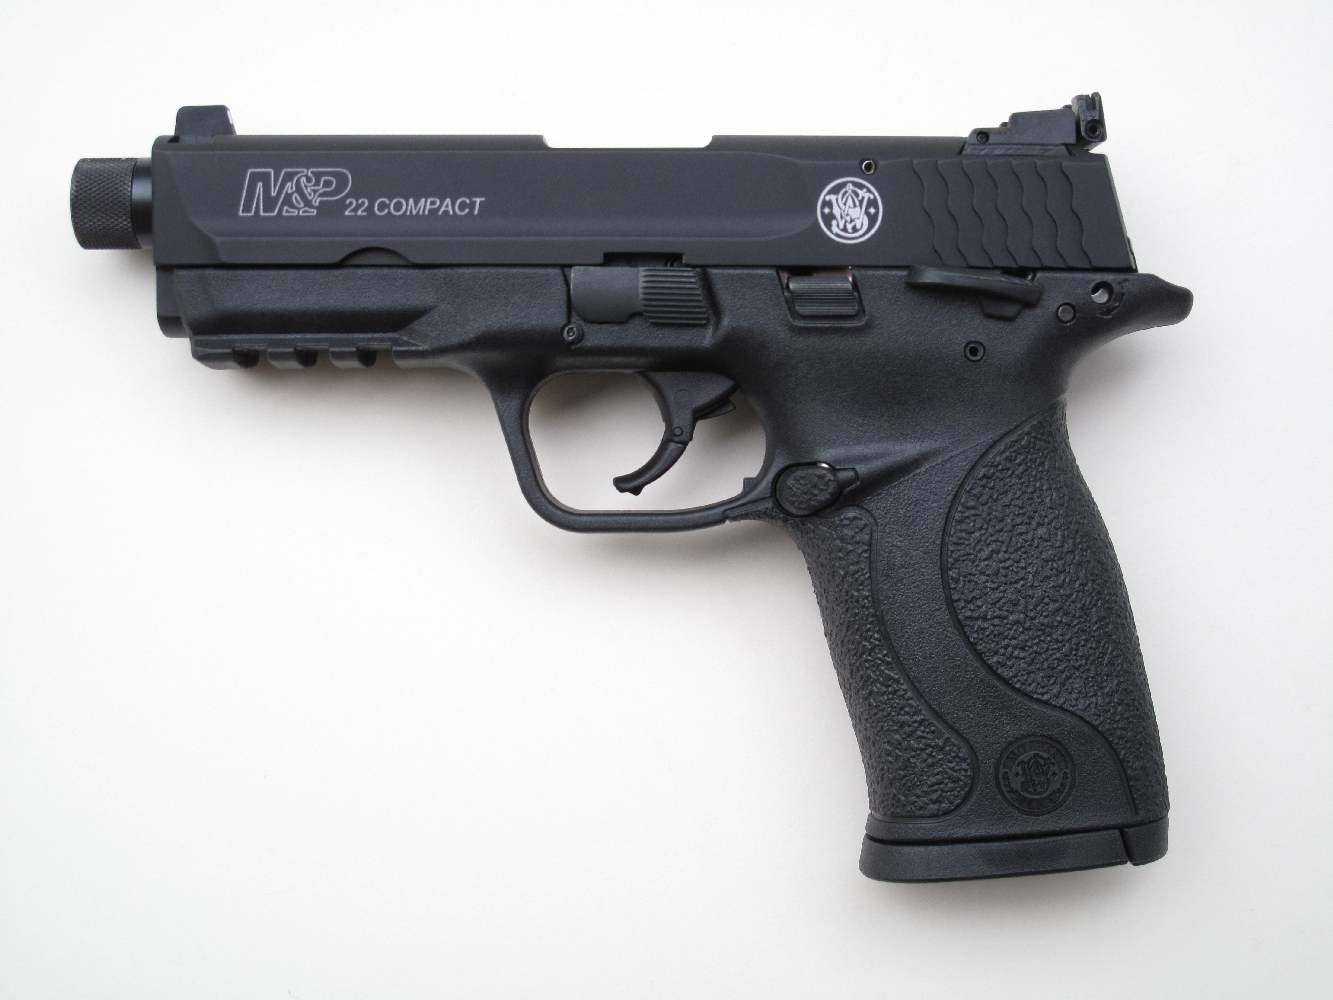 Pistolet semi-automatique Smith & Wesson « M&P 22 Compact » de calibre .22 Long Rifle